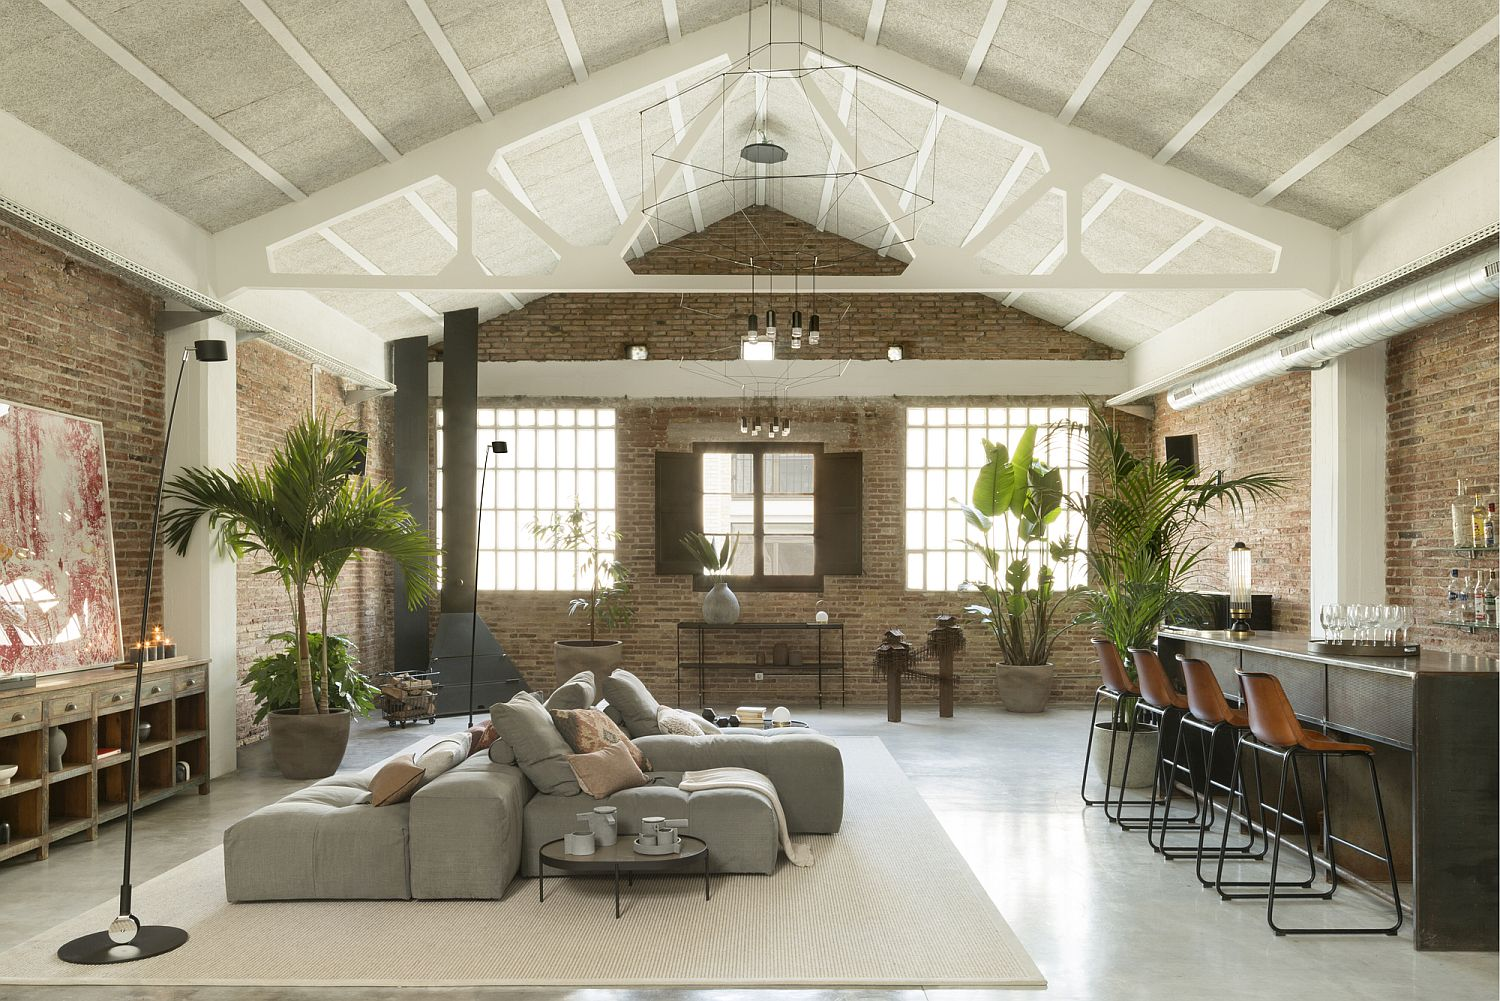 Modern industrial loft in Barcelona with brick walls and vaulted ceiling